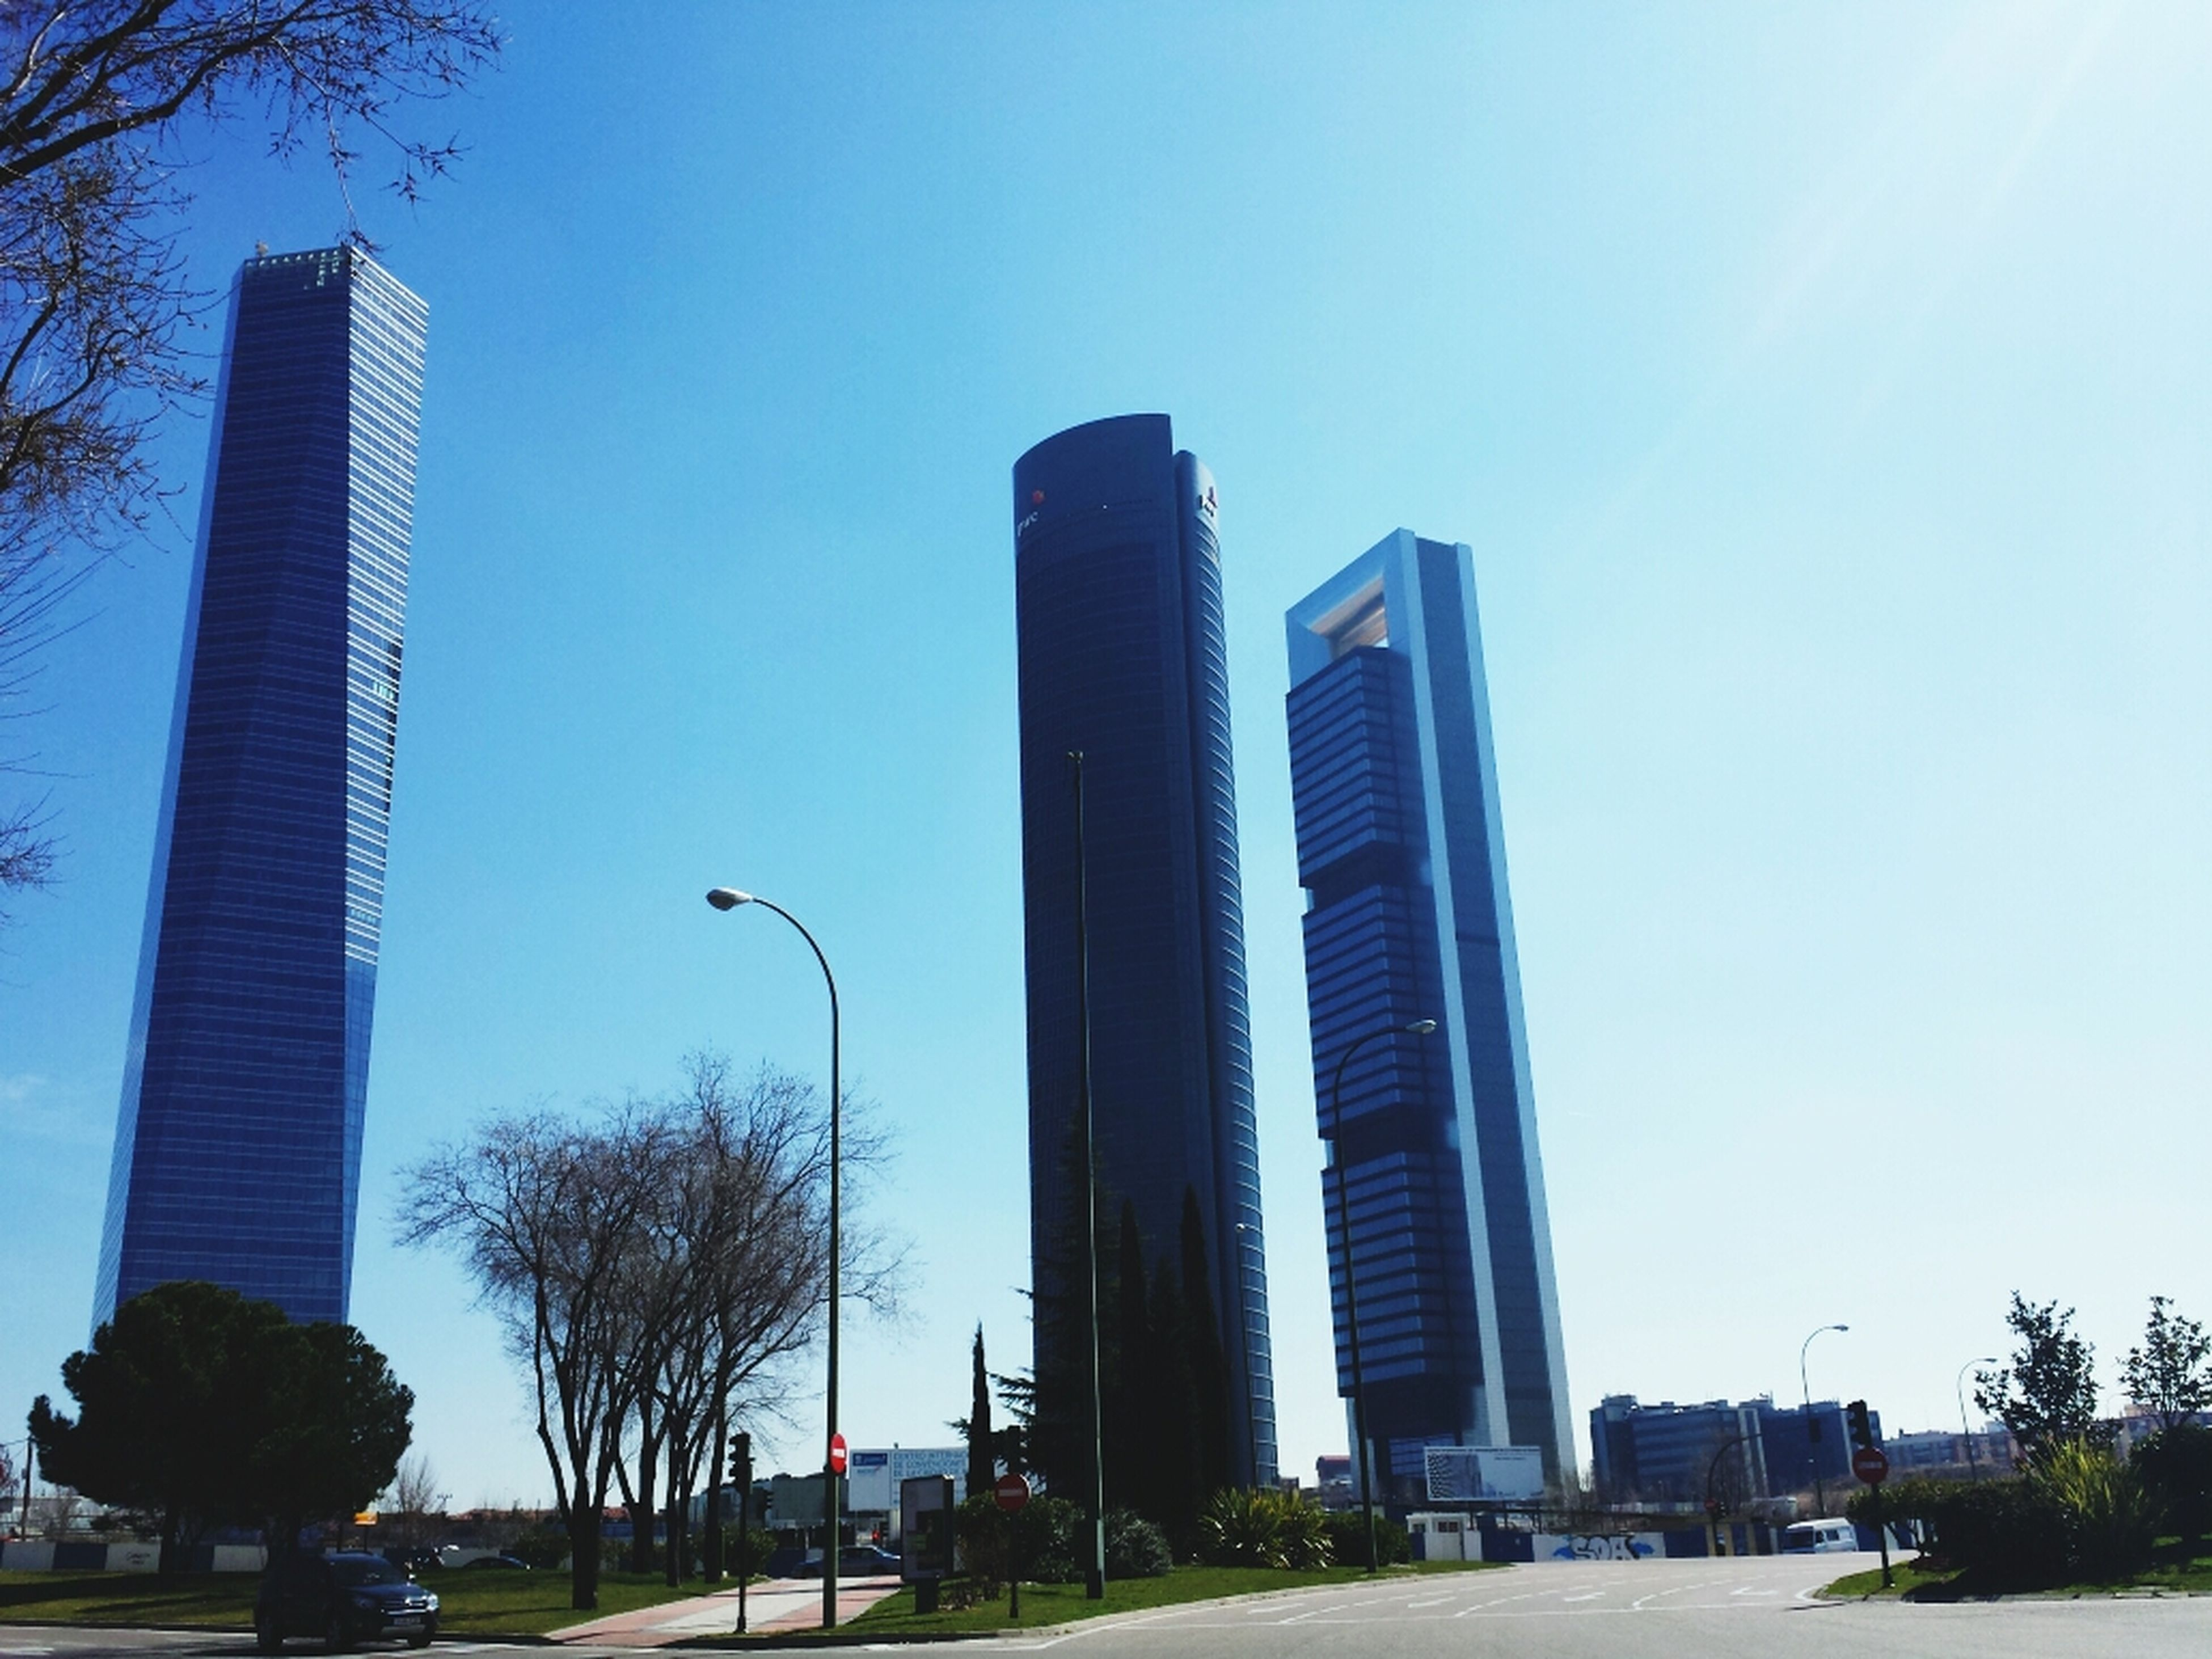 building exterior, architecture, built structure, skyscraper, city, tall - high, clear sky, modern, office building, tower, tree, low angle view, car, urban skyline, transportation, city life, blue, building, tall, street light